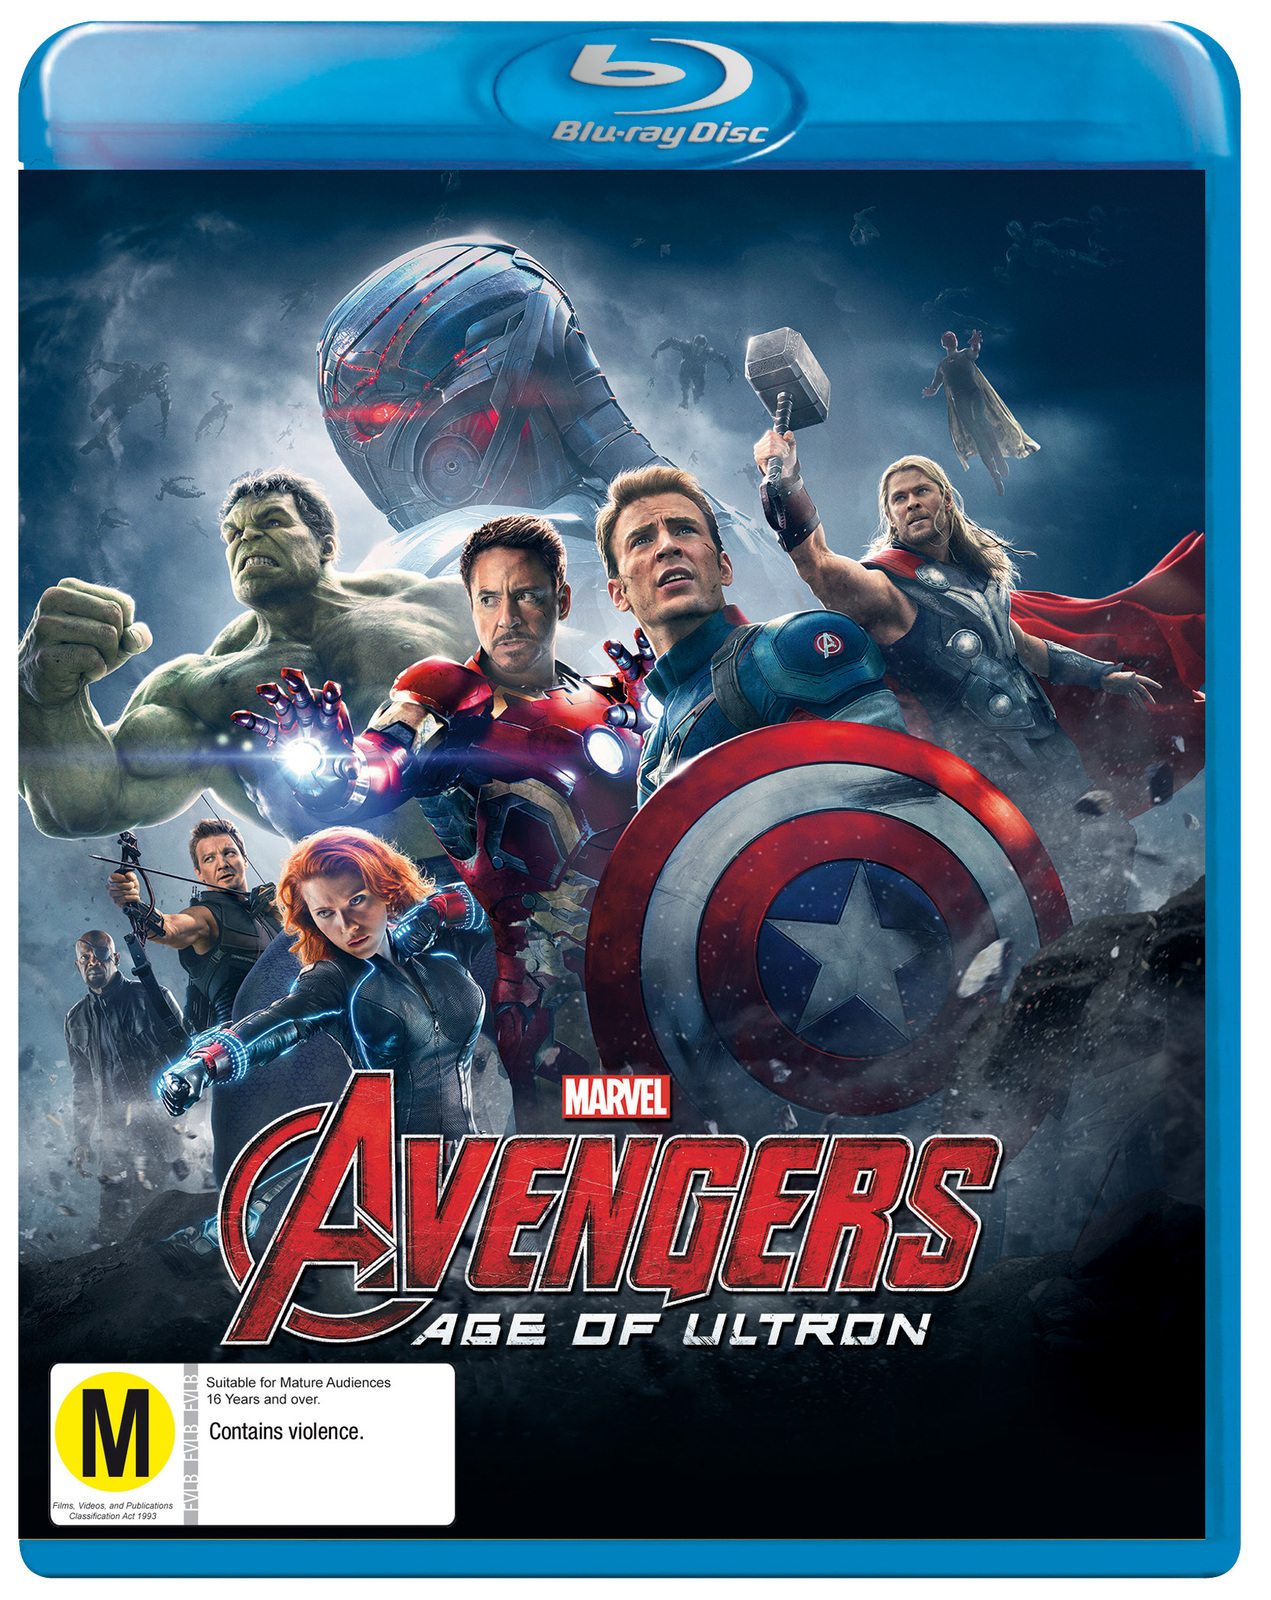 The Avengers: Age of Ultron on Blu-ray image